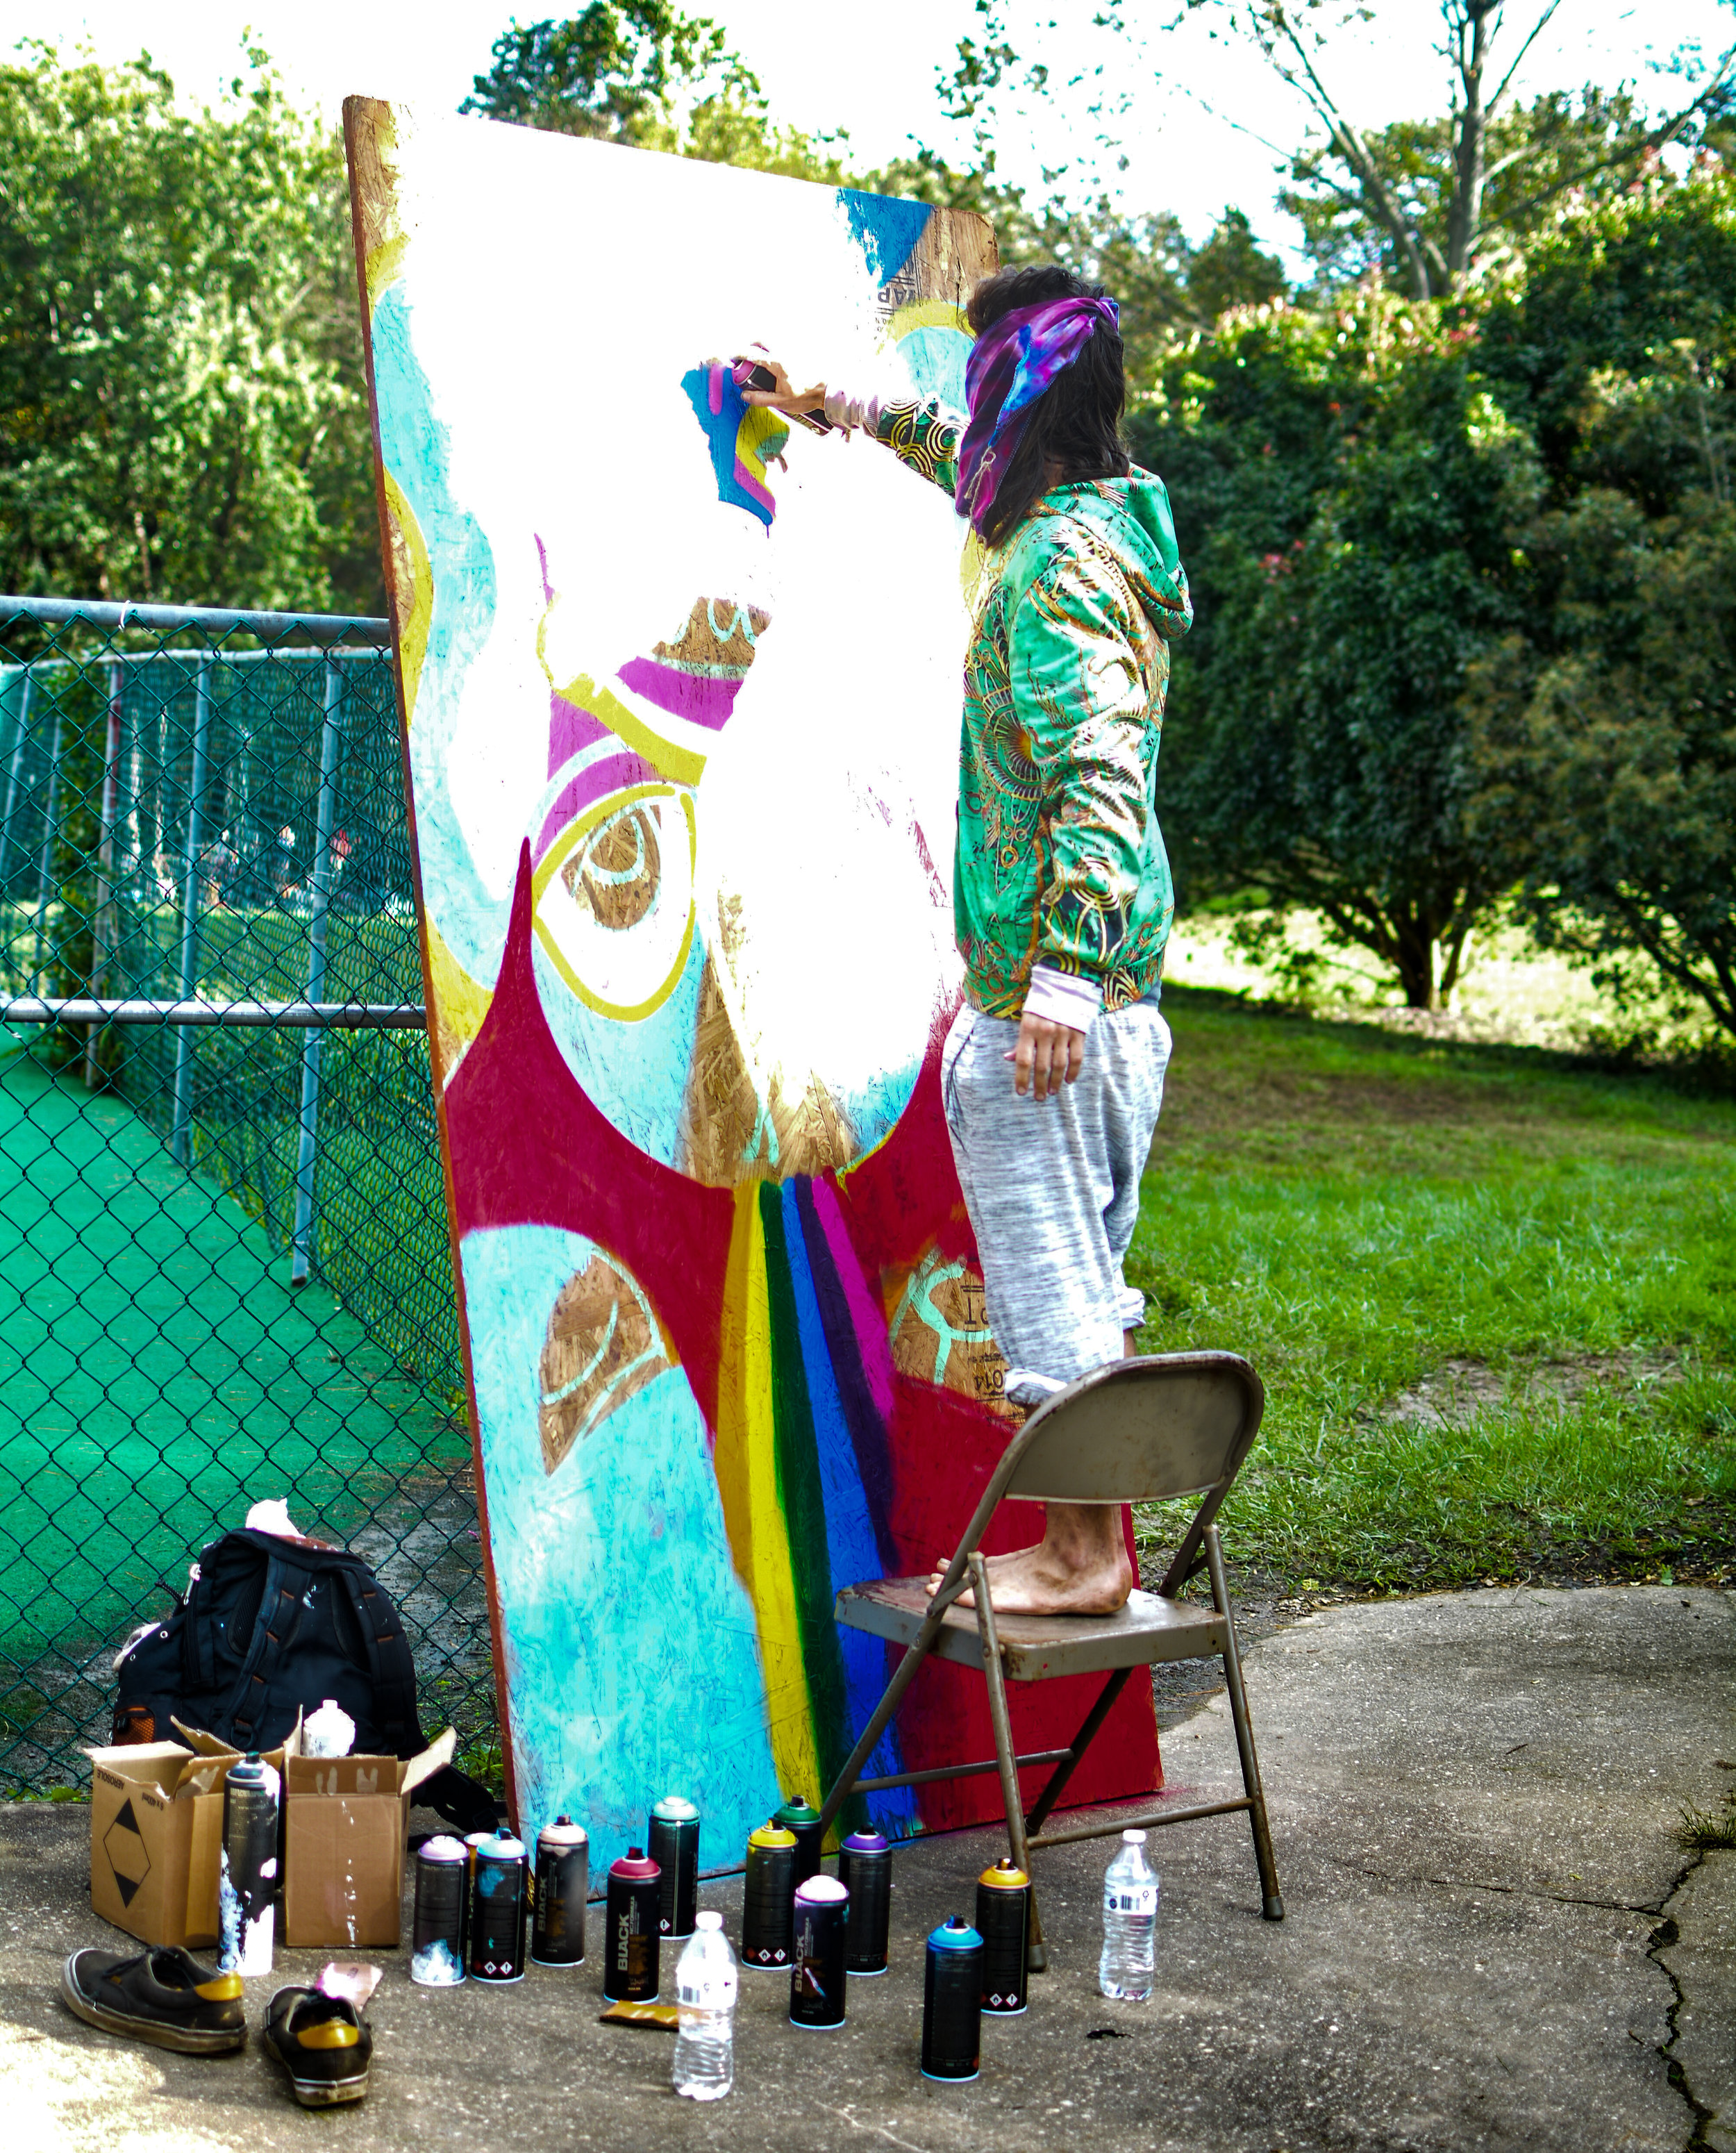 Yogamuffin painting at Beauty in the backyard 2018 live art music collaboration sustainability love community earth friendly